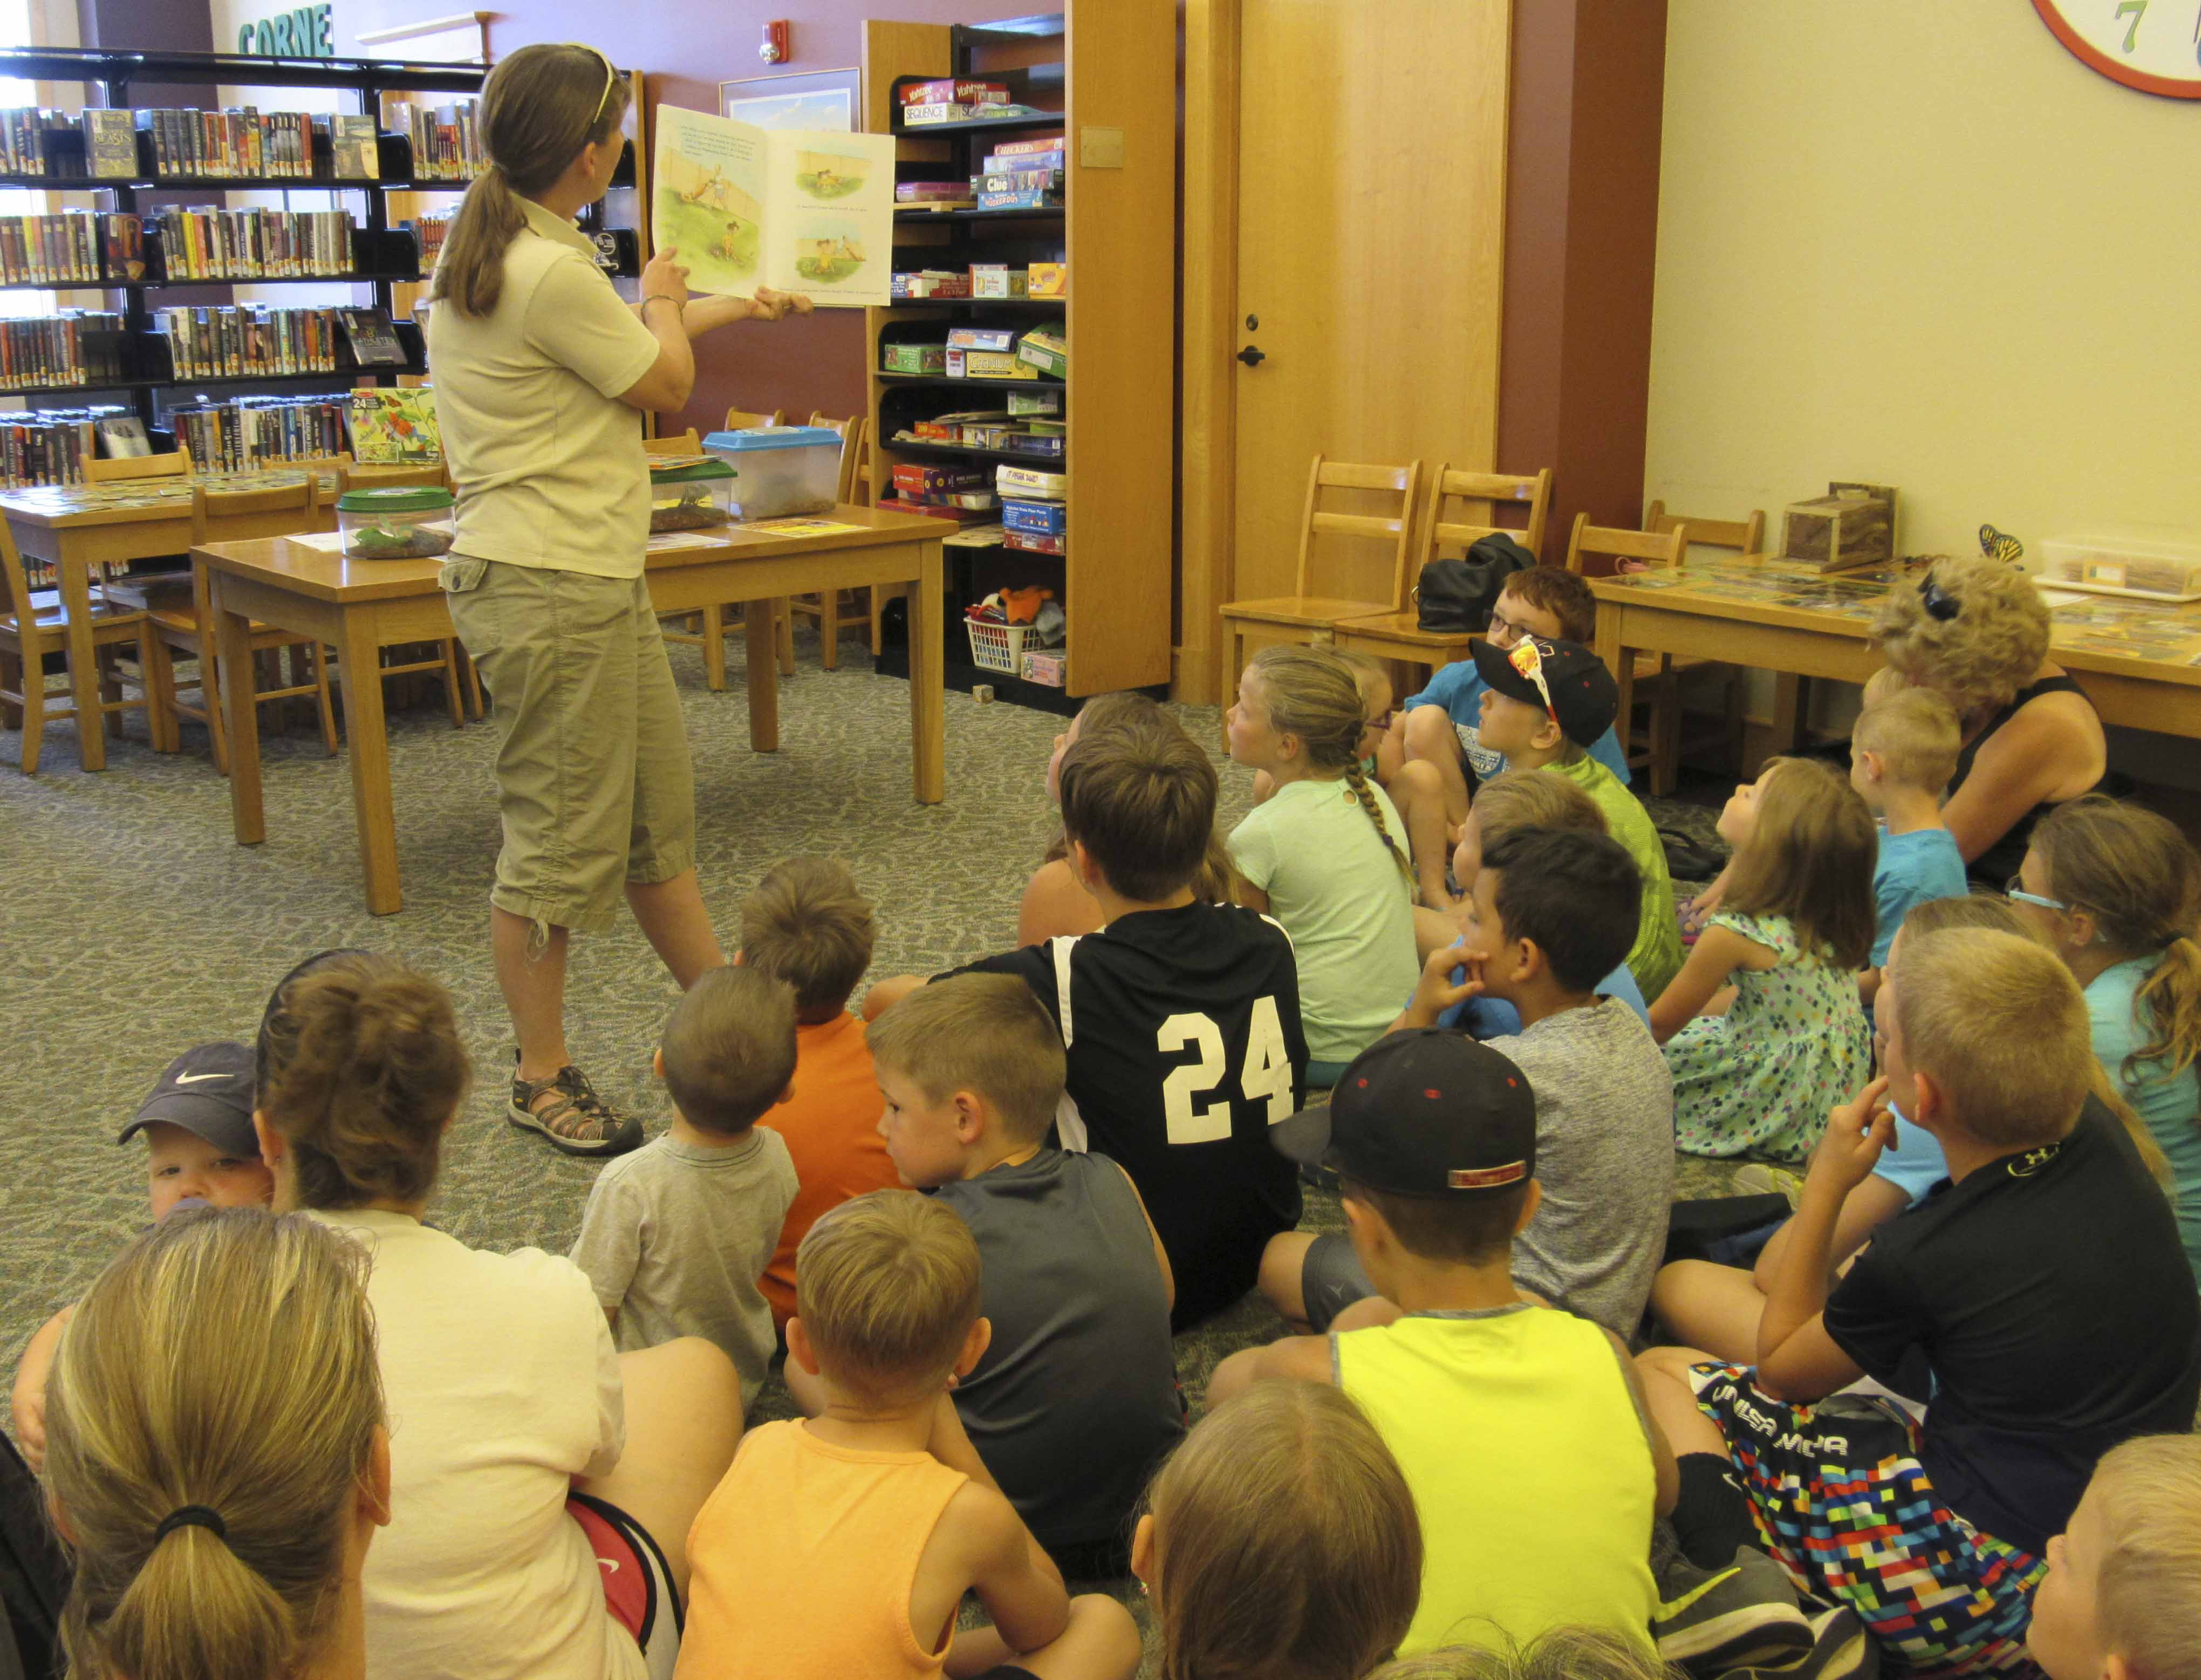 """Jones County Naturalist Michele Olson reads """"On Meadowview Street"""" by Henry Cole to dozens and dozens of youngsters at the Monticello library. Olson's visit was part of the library's Summer Reading Program. (Photos by Kim Brooks)"""